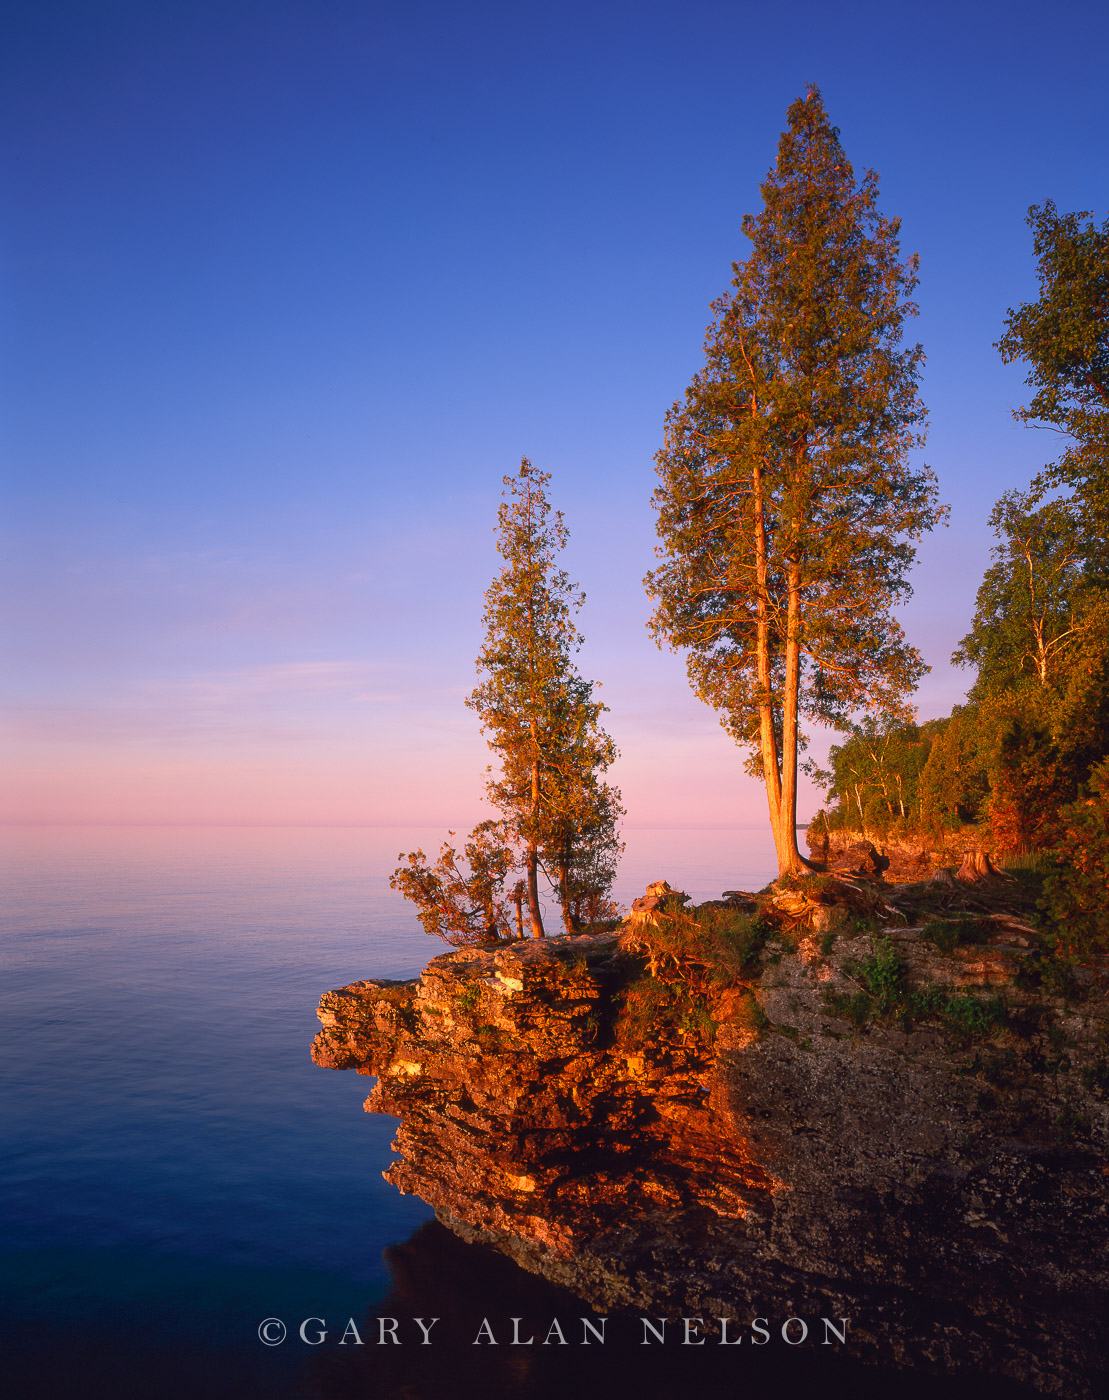 Door County, Lake Michigan, Wisconsin, cave point, photo